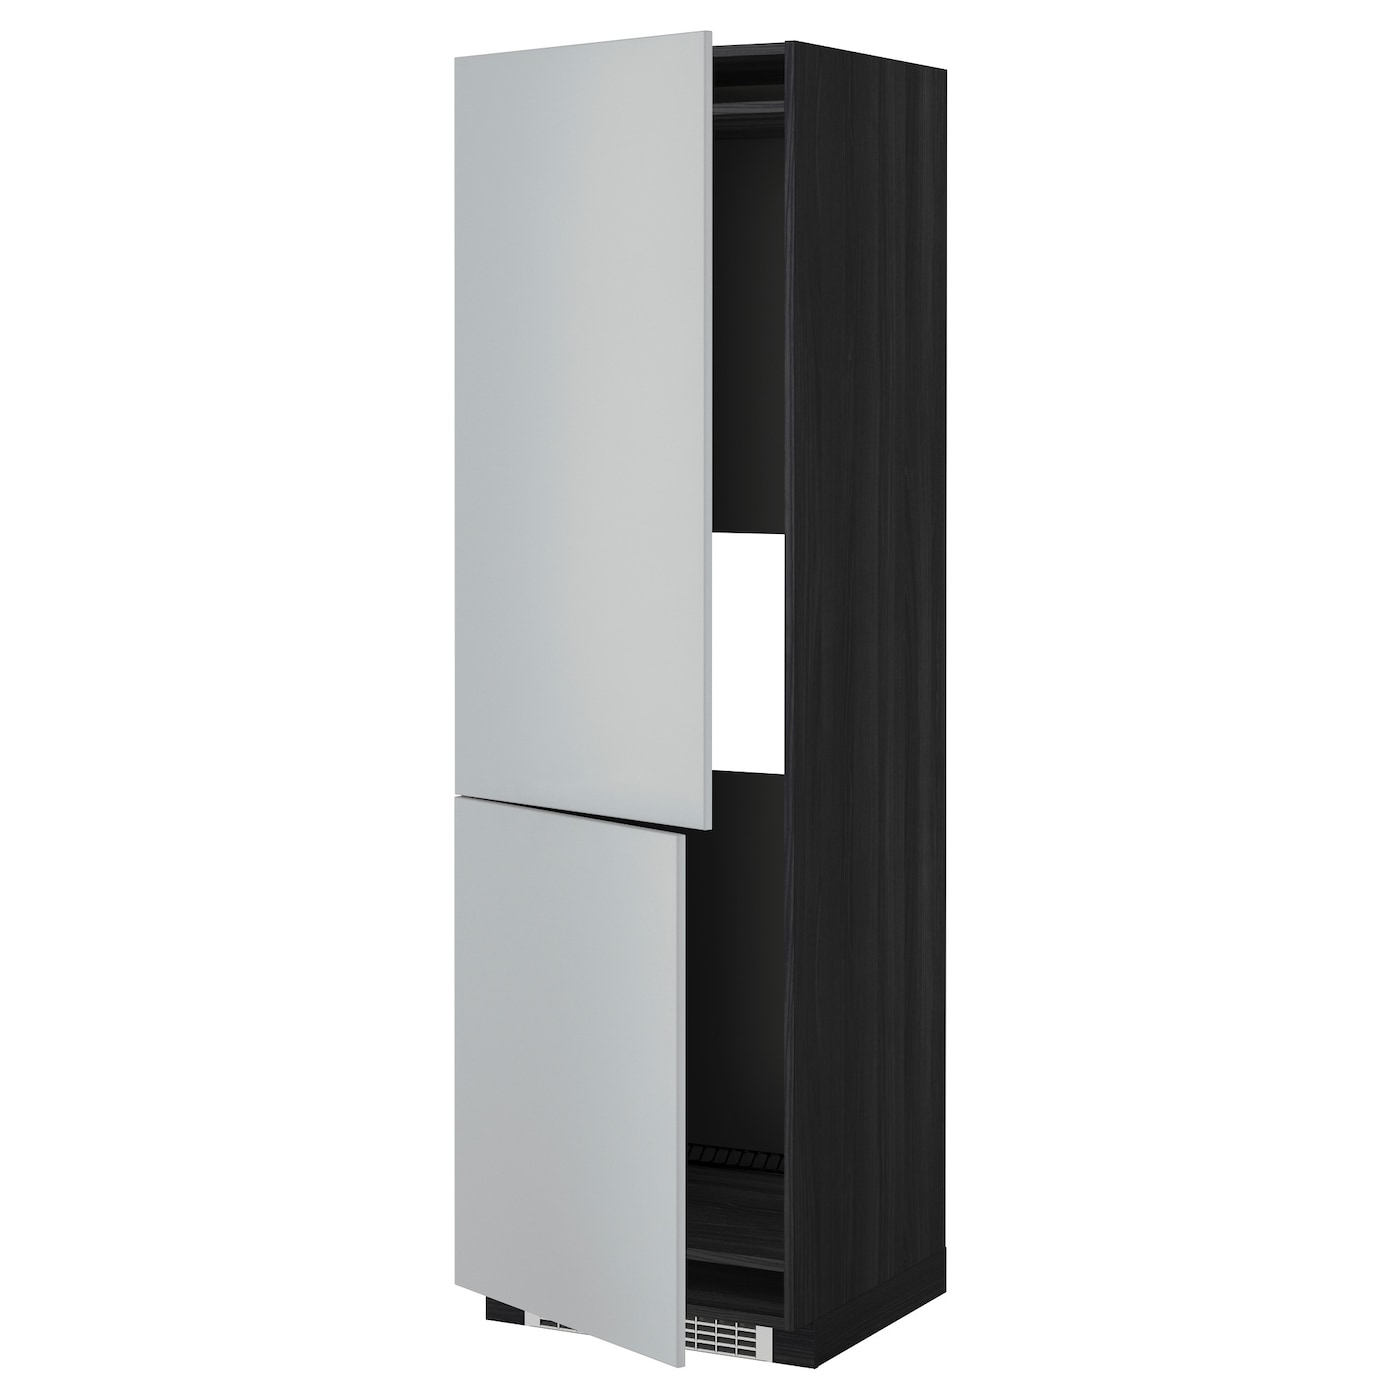 IKEA METOD hi cab f fridge or freezer w 2 drs Sturdy frame construction, 18 mm thick.